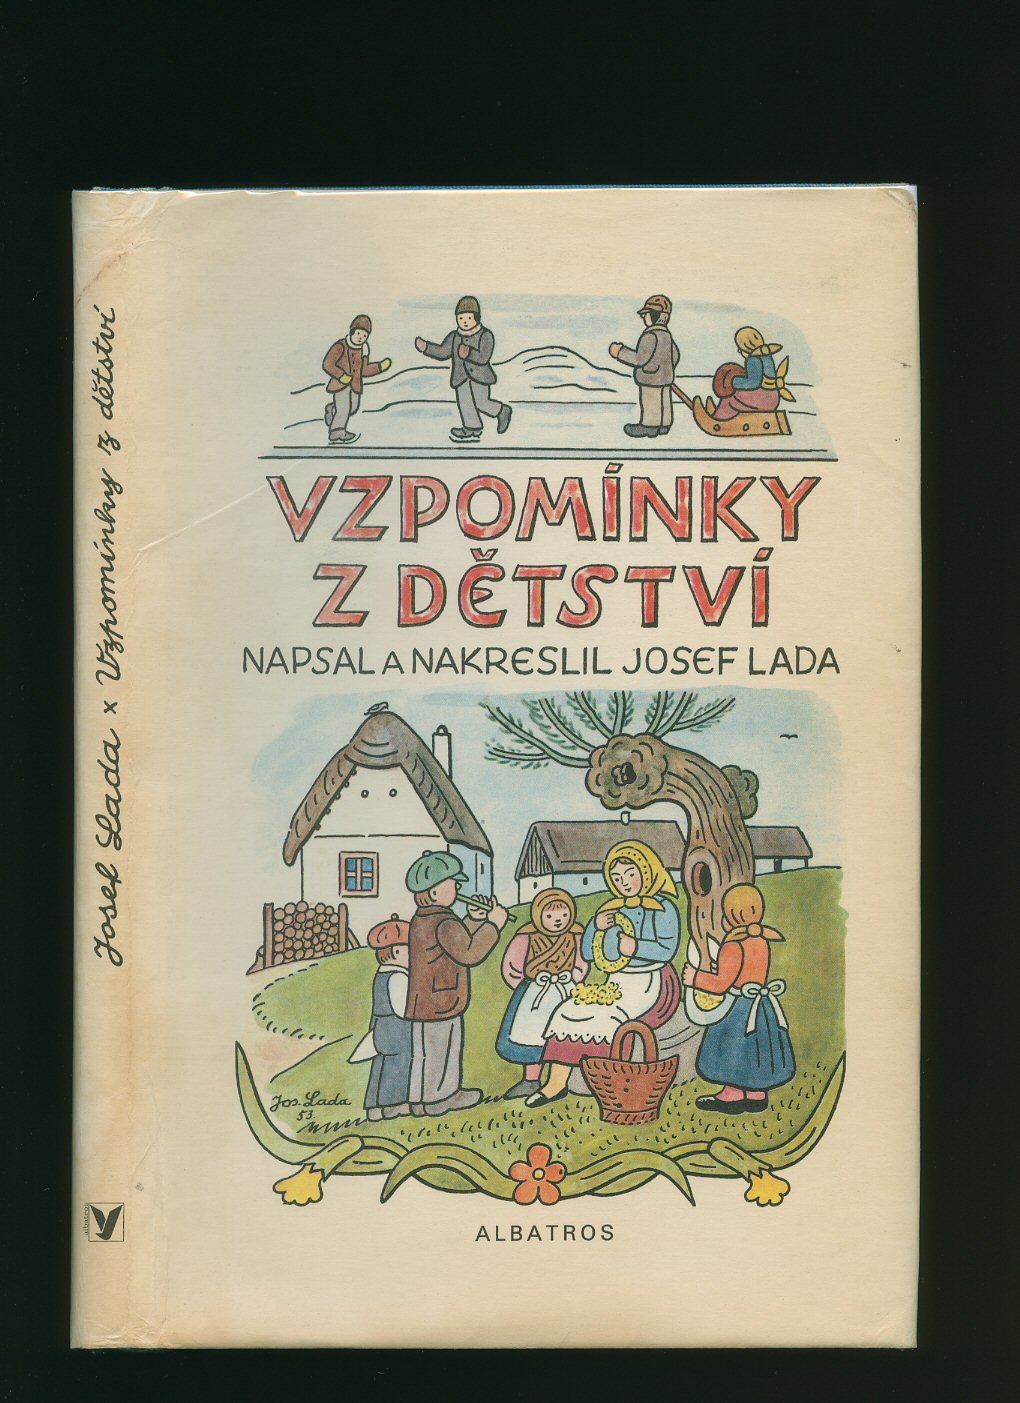 NAPSAL A NAKRESLIL AND JOSEF LADA [CZECHOSLOVAKIA (CZECH AND SLOVAK: CESKOSLOVENSKO, CESKO-SLOVENSKO) WAS A SOVEREIGN STATE IN CENTRAL EUROPE THAT EXISTED FROM OCTOBER 1918, WHEN IT DECLARED ITS INDEPENDENCE FROM THE AUSTRO-HUNGARIAN EMPIRE, UNTIL ITS PEA - Vzpomínky z detství [Memories of Childhood]